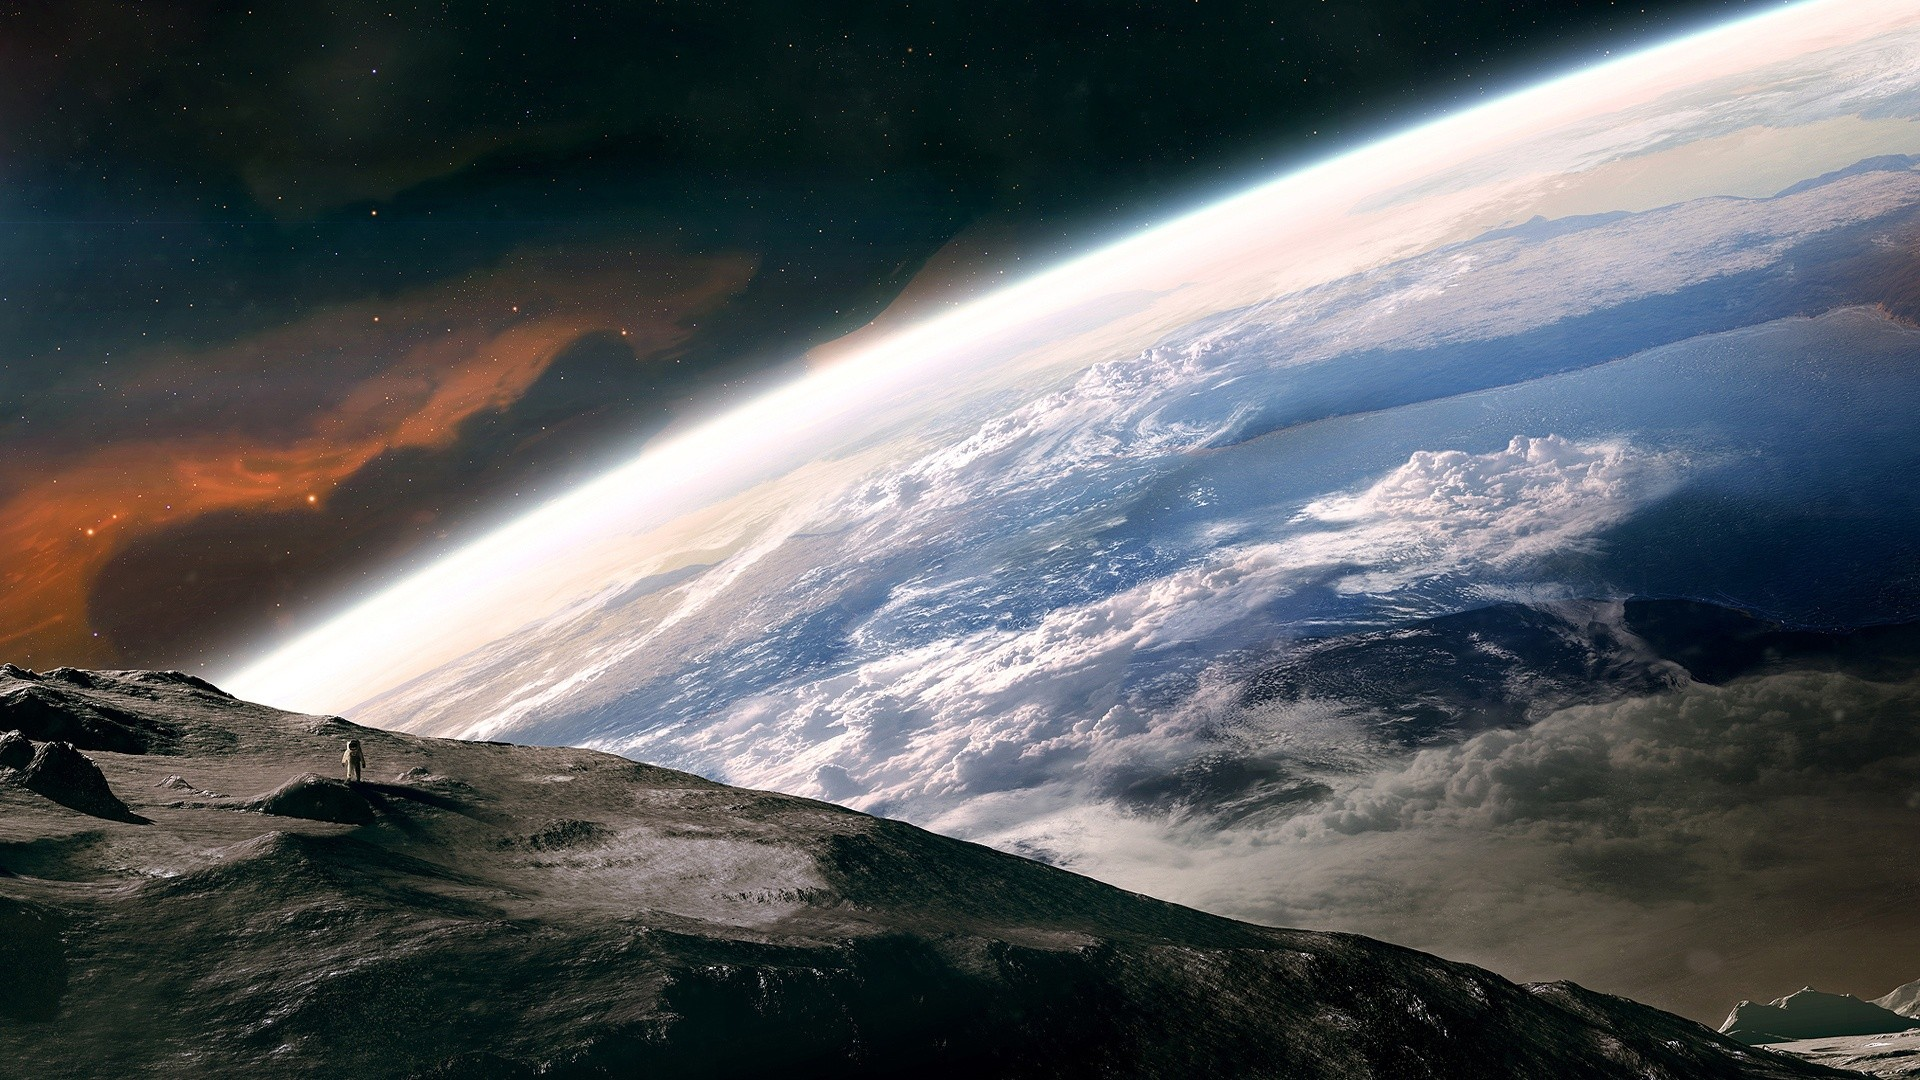 Earth From Space HD Wallpaper   Pics about space 1920x1080